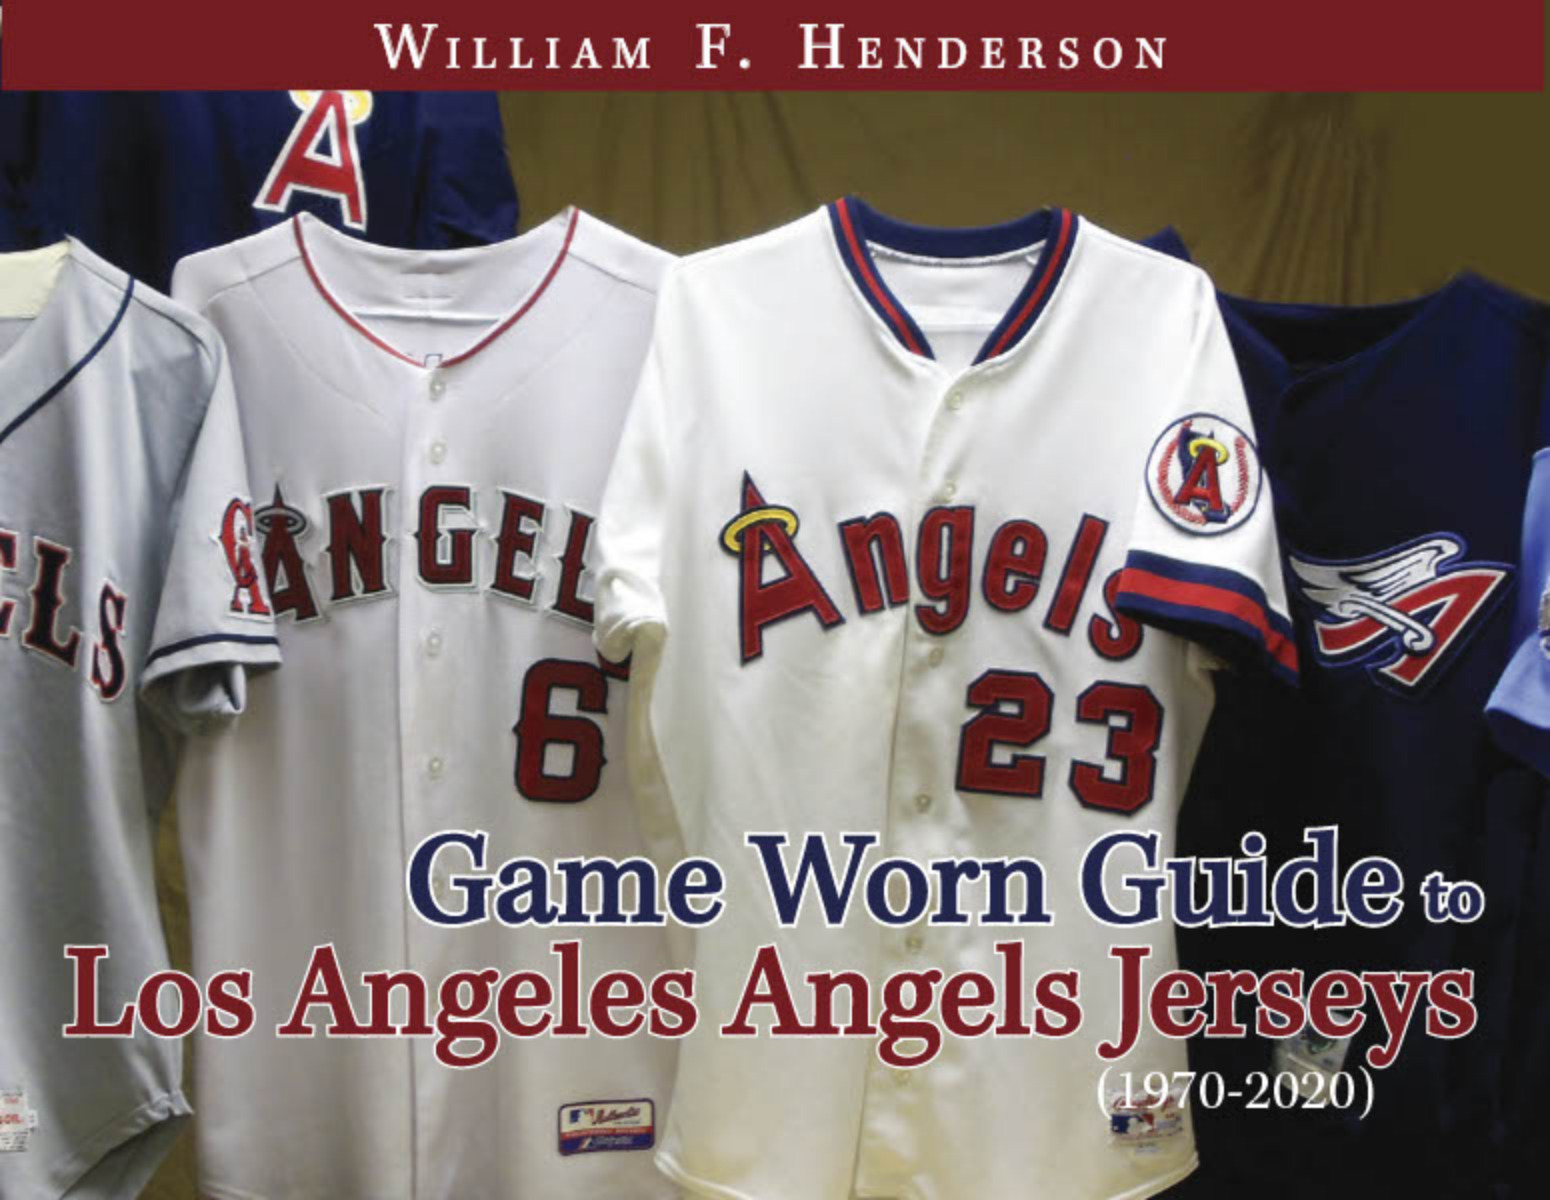 Game Worn Guide to Los Angeles/California/Anaheim Angels Jerseys (1970-2020)